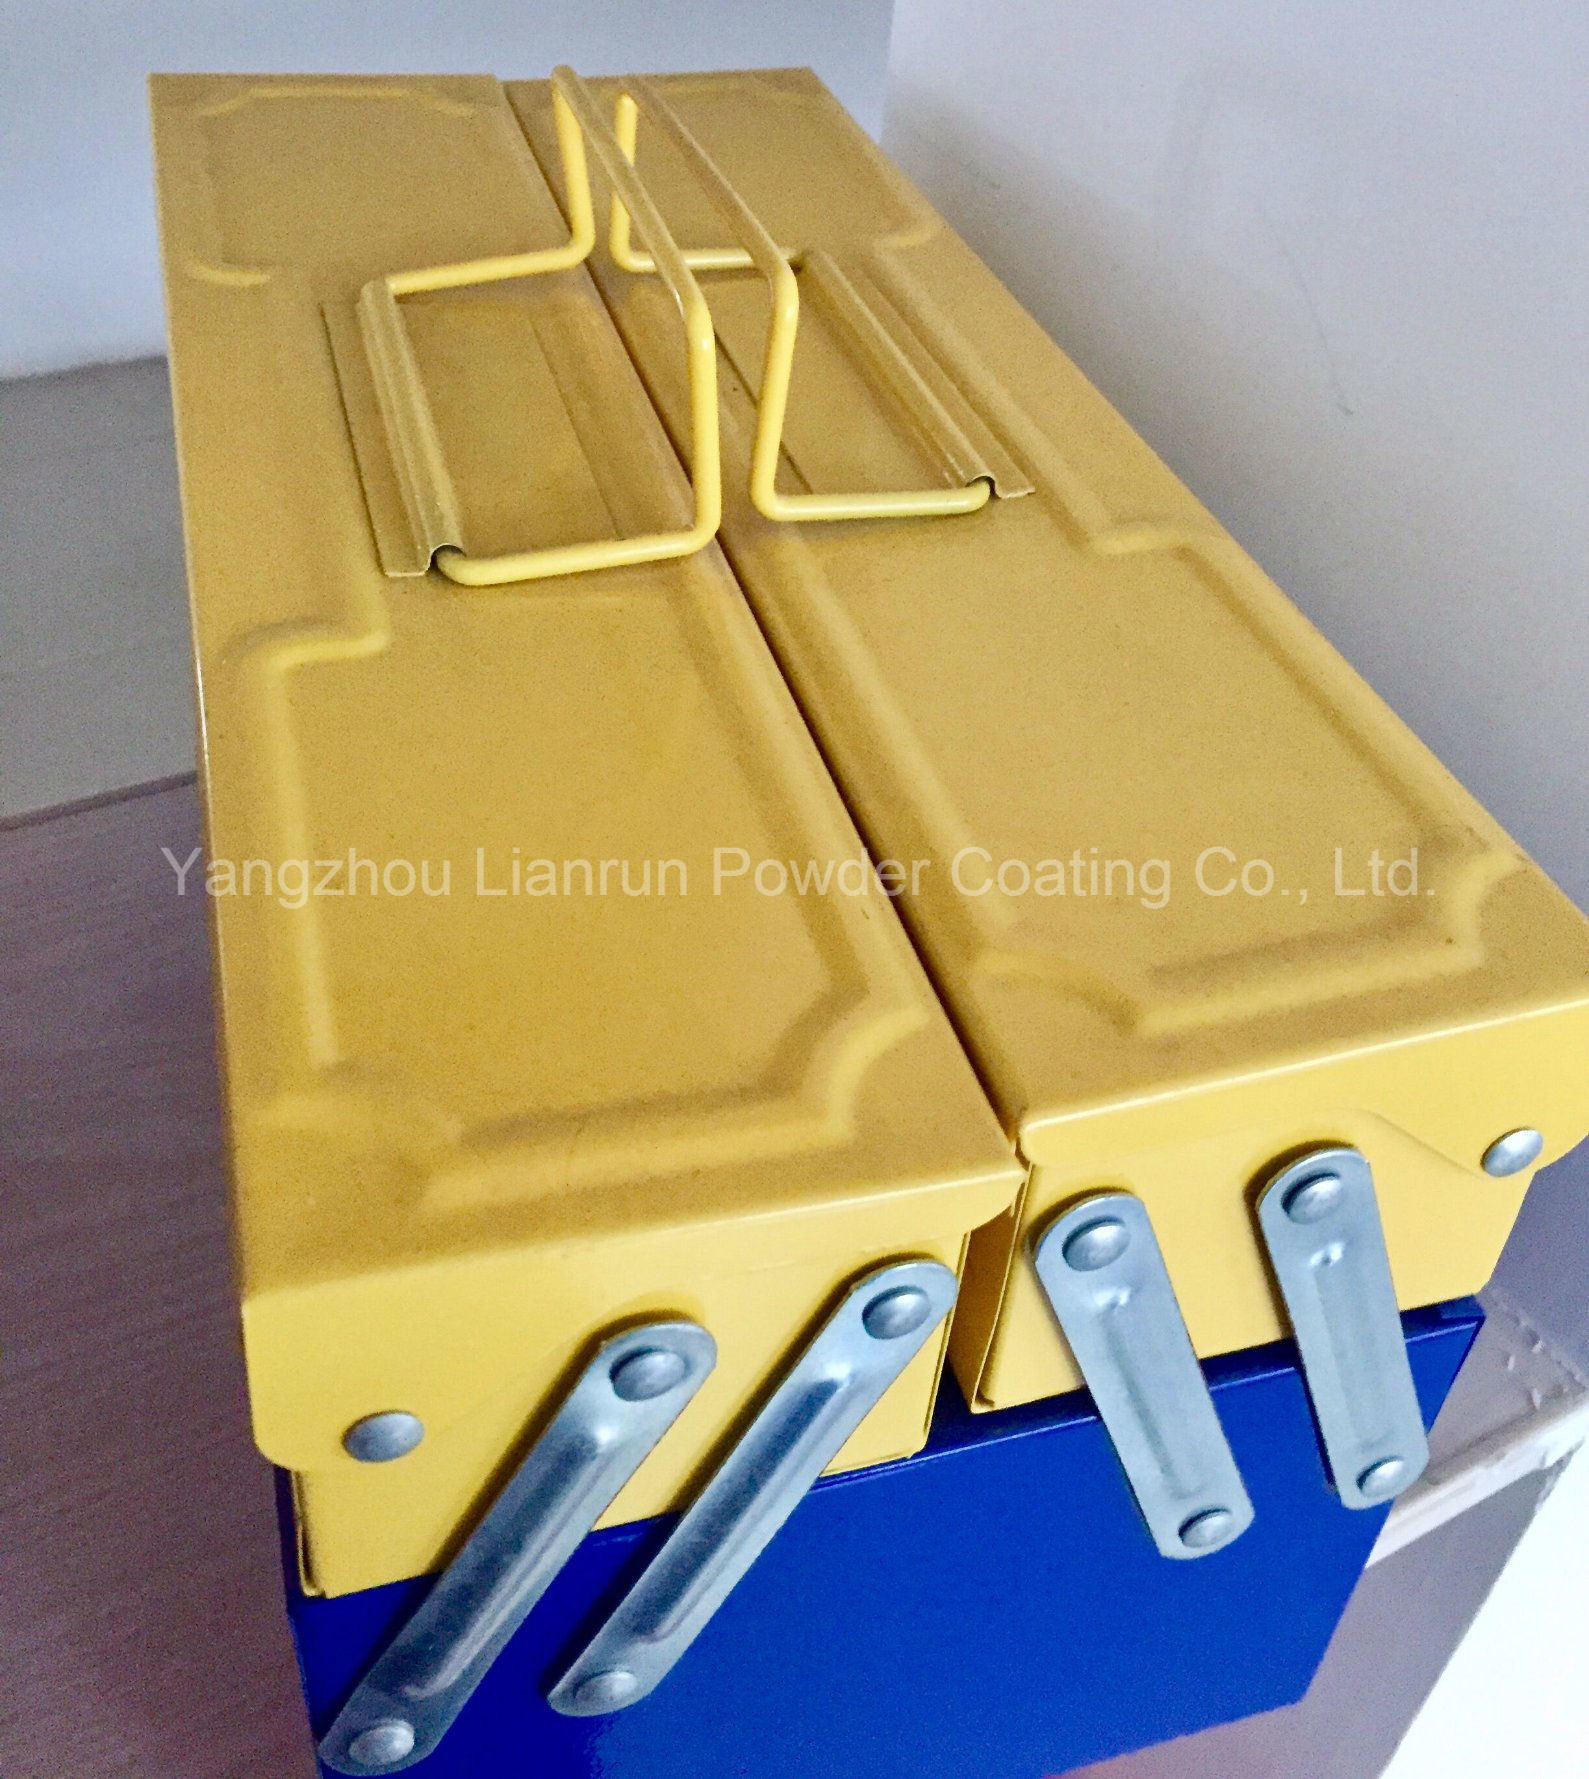 Special Powder Coating for Constrction Machinery